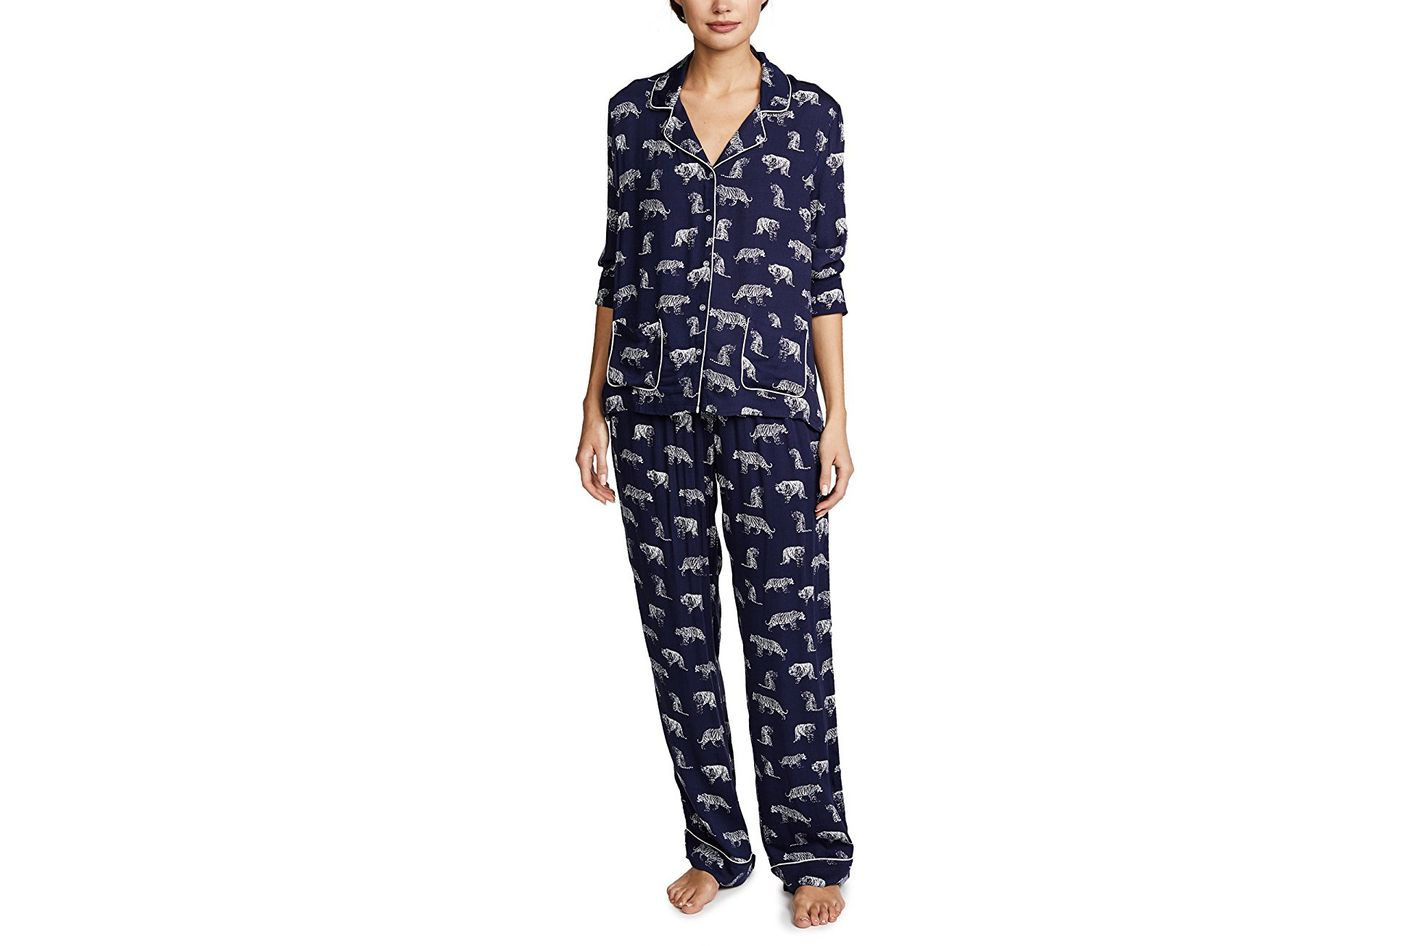 7fdad48150 Printed Pajamas. Splendid Gentle Tiger PJ Set